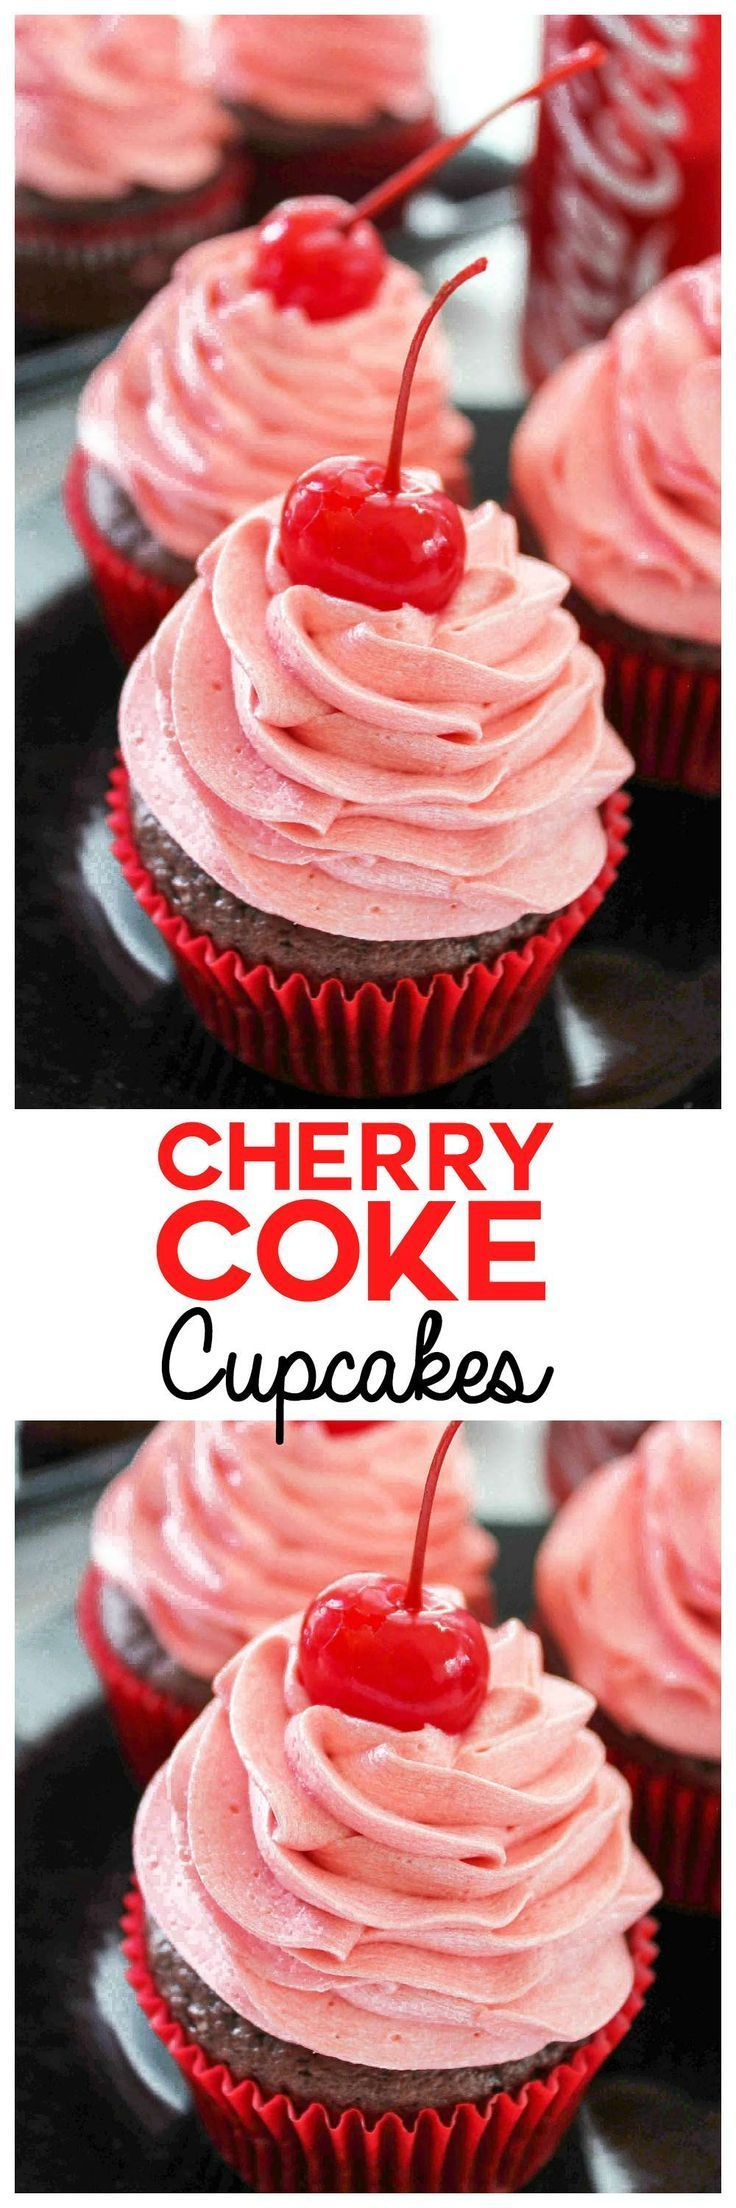 Cherry Coke Cupcakes: The sweet taste of your favorite summer drink in just a few bites. Refresh yourself with rich chocolate cupcakes with Coca Cola in the batter AND the frosting.